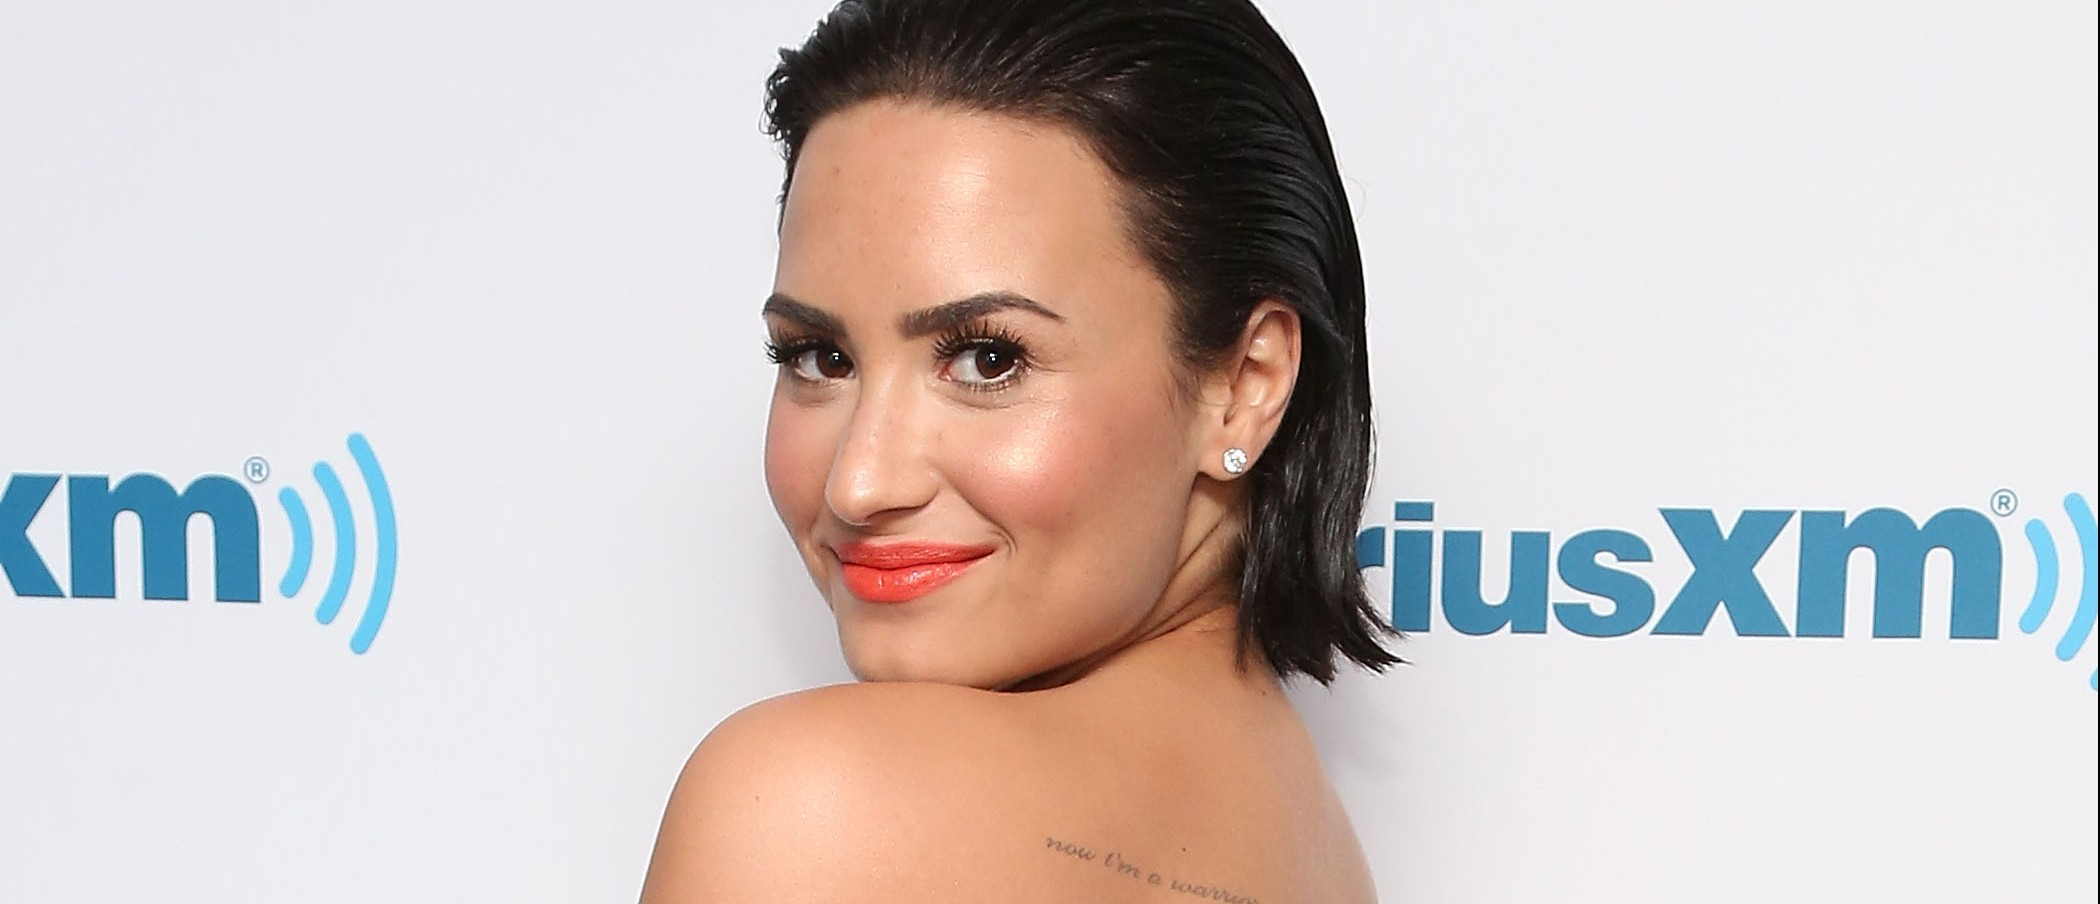 Demi Lovato posts bikini photo